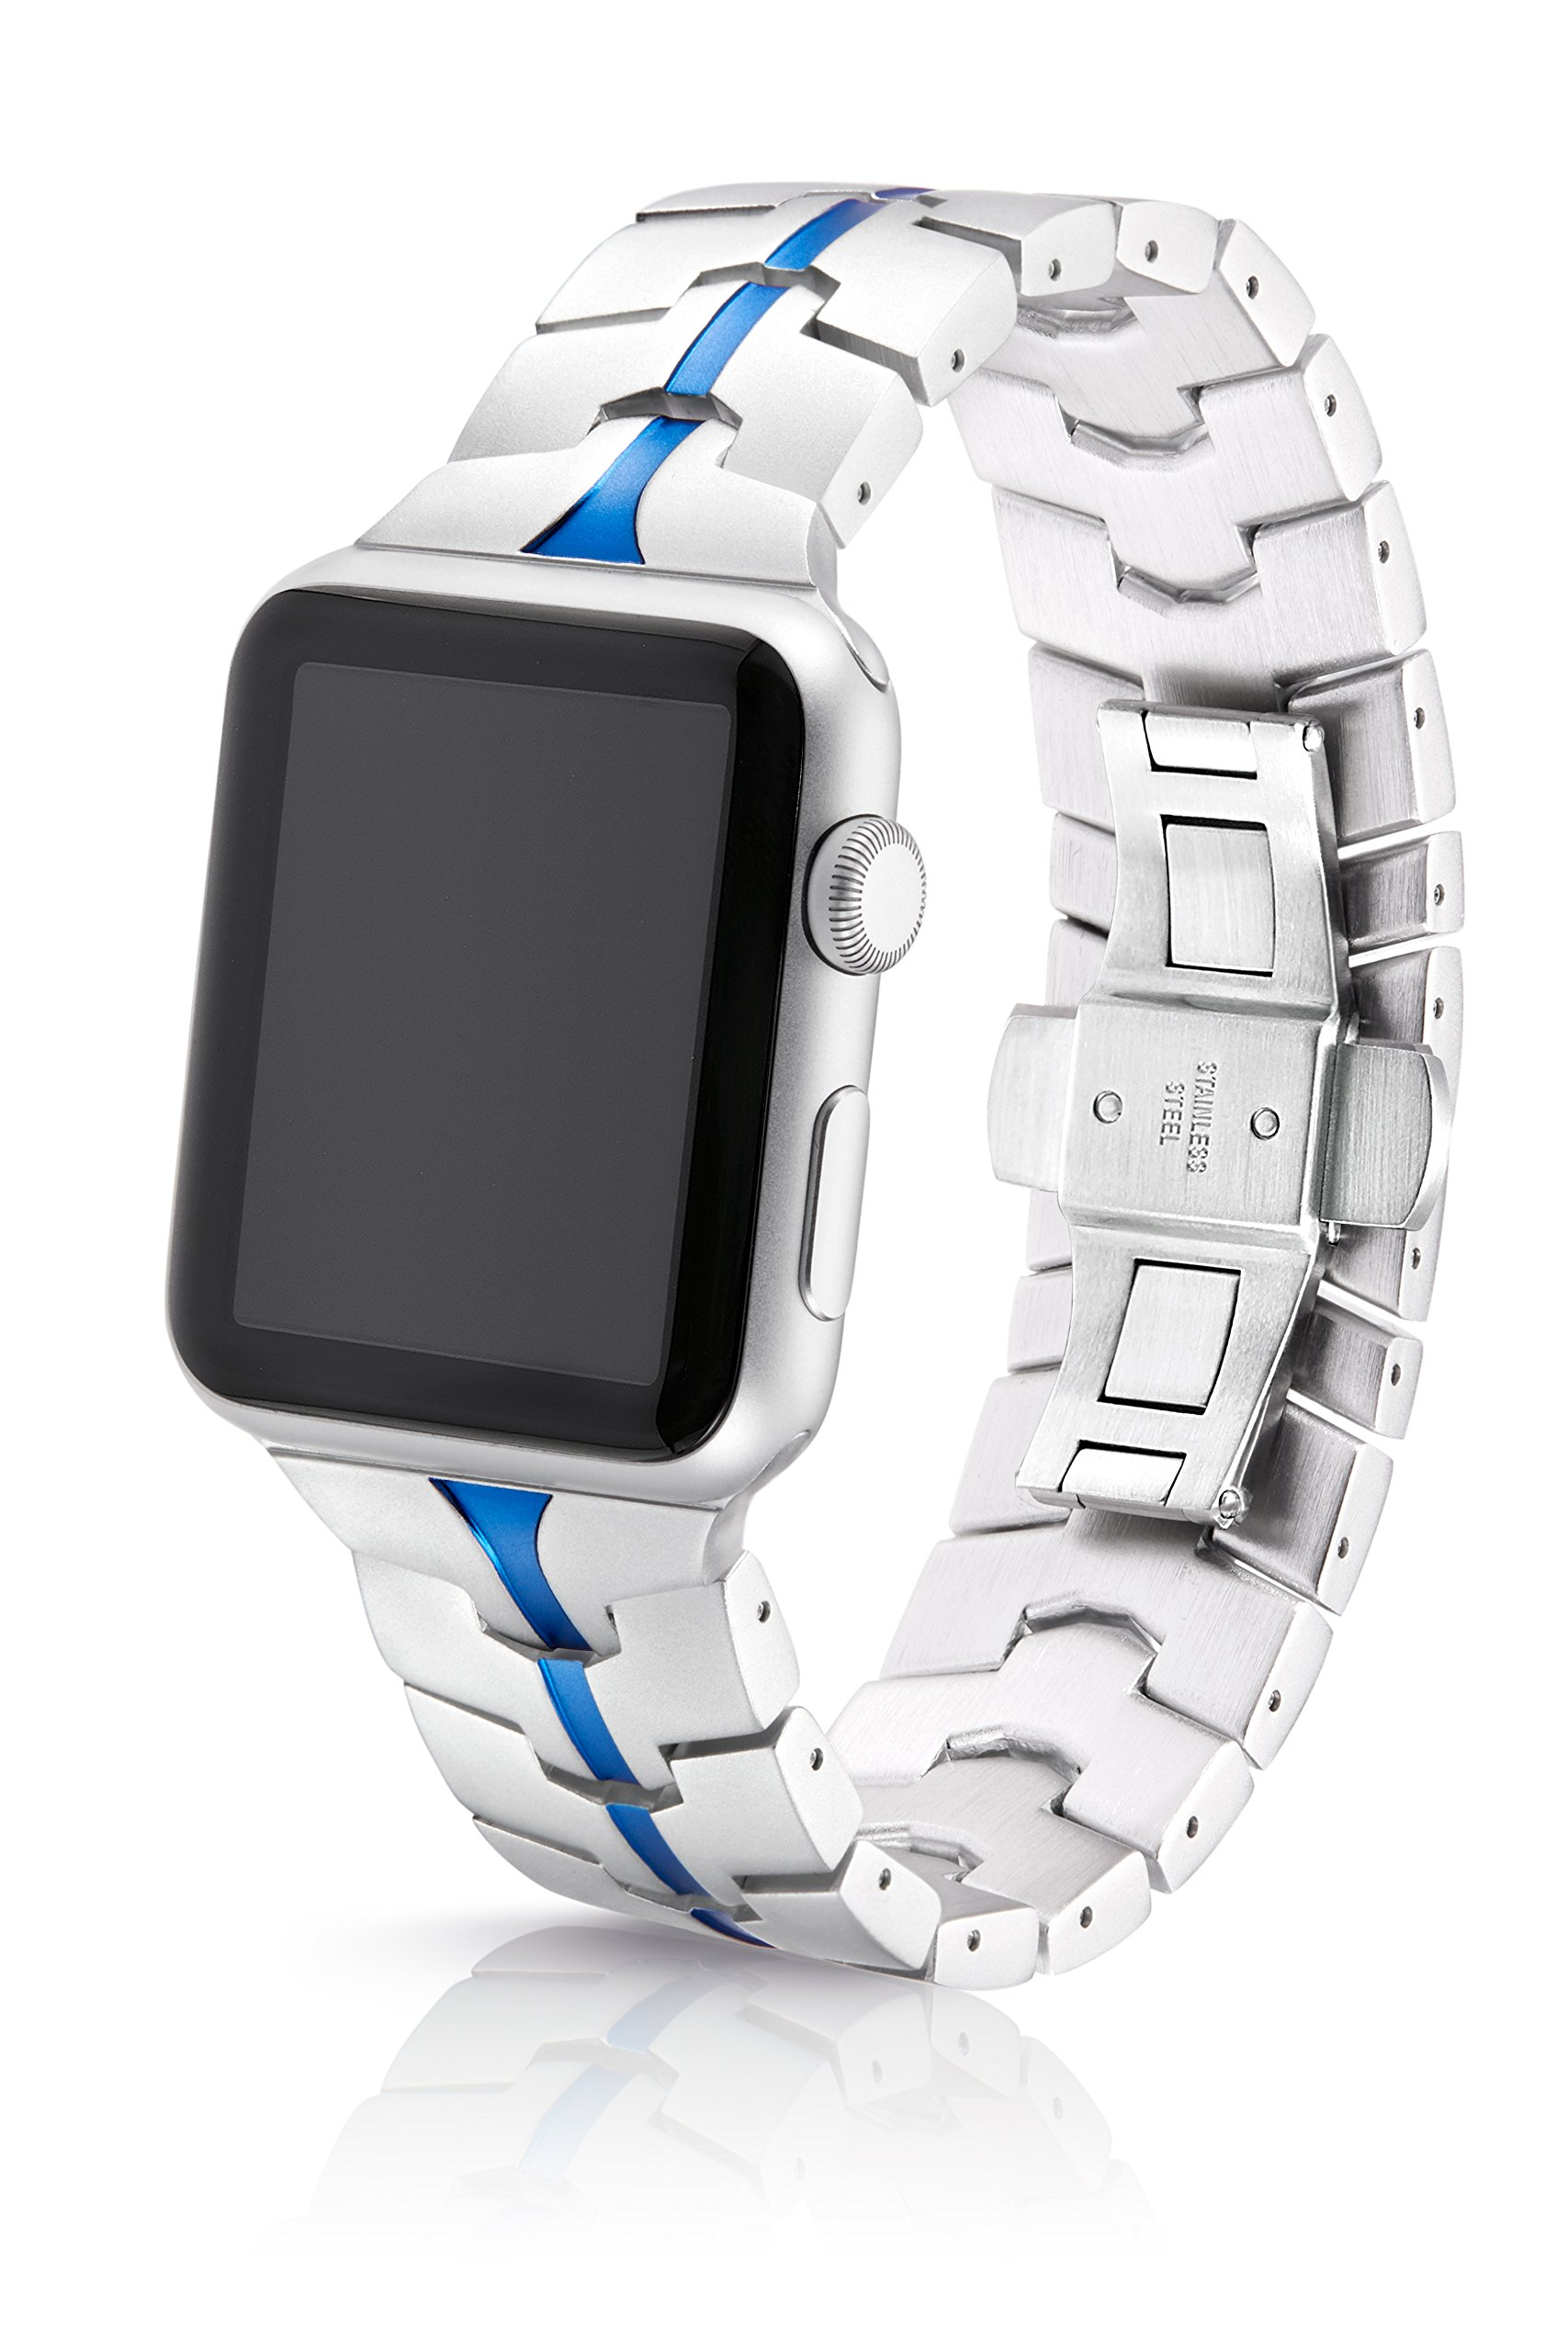 42/44mm JUUK Sapphire Vitero Premium Watch Band Made for The Apple Watch, Using Aircraft Grade, Hard Anodized 6000 Series Aluminum with a Solid Stainless Steel Butterfly deployant Buckle (Matte)